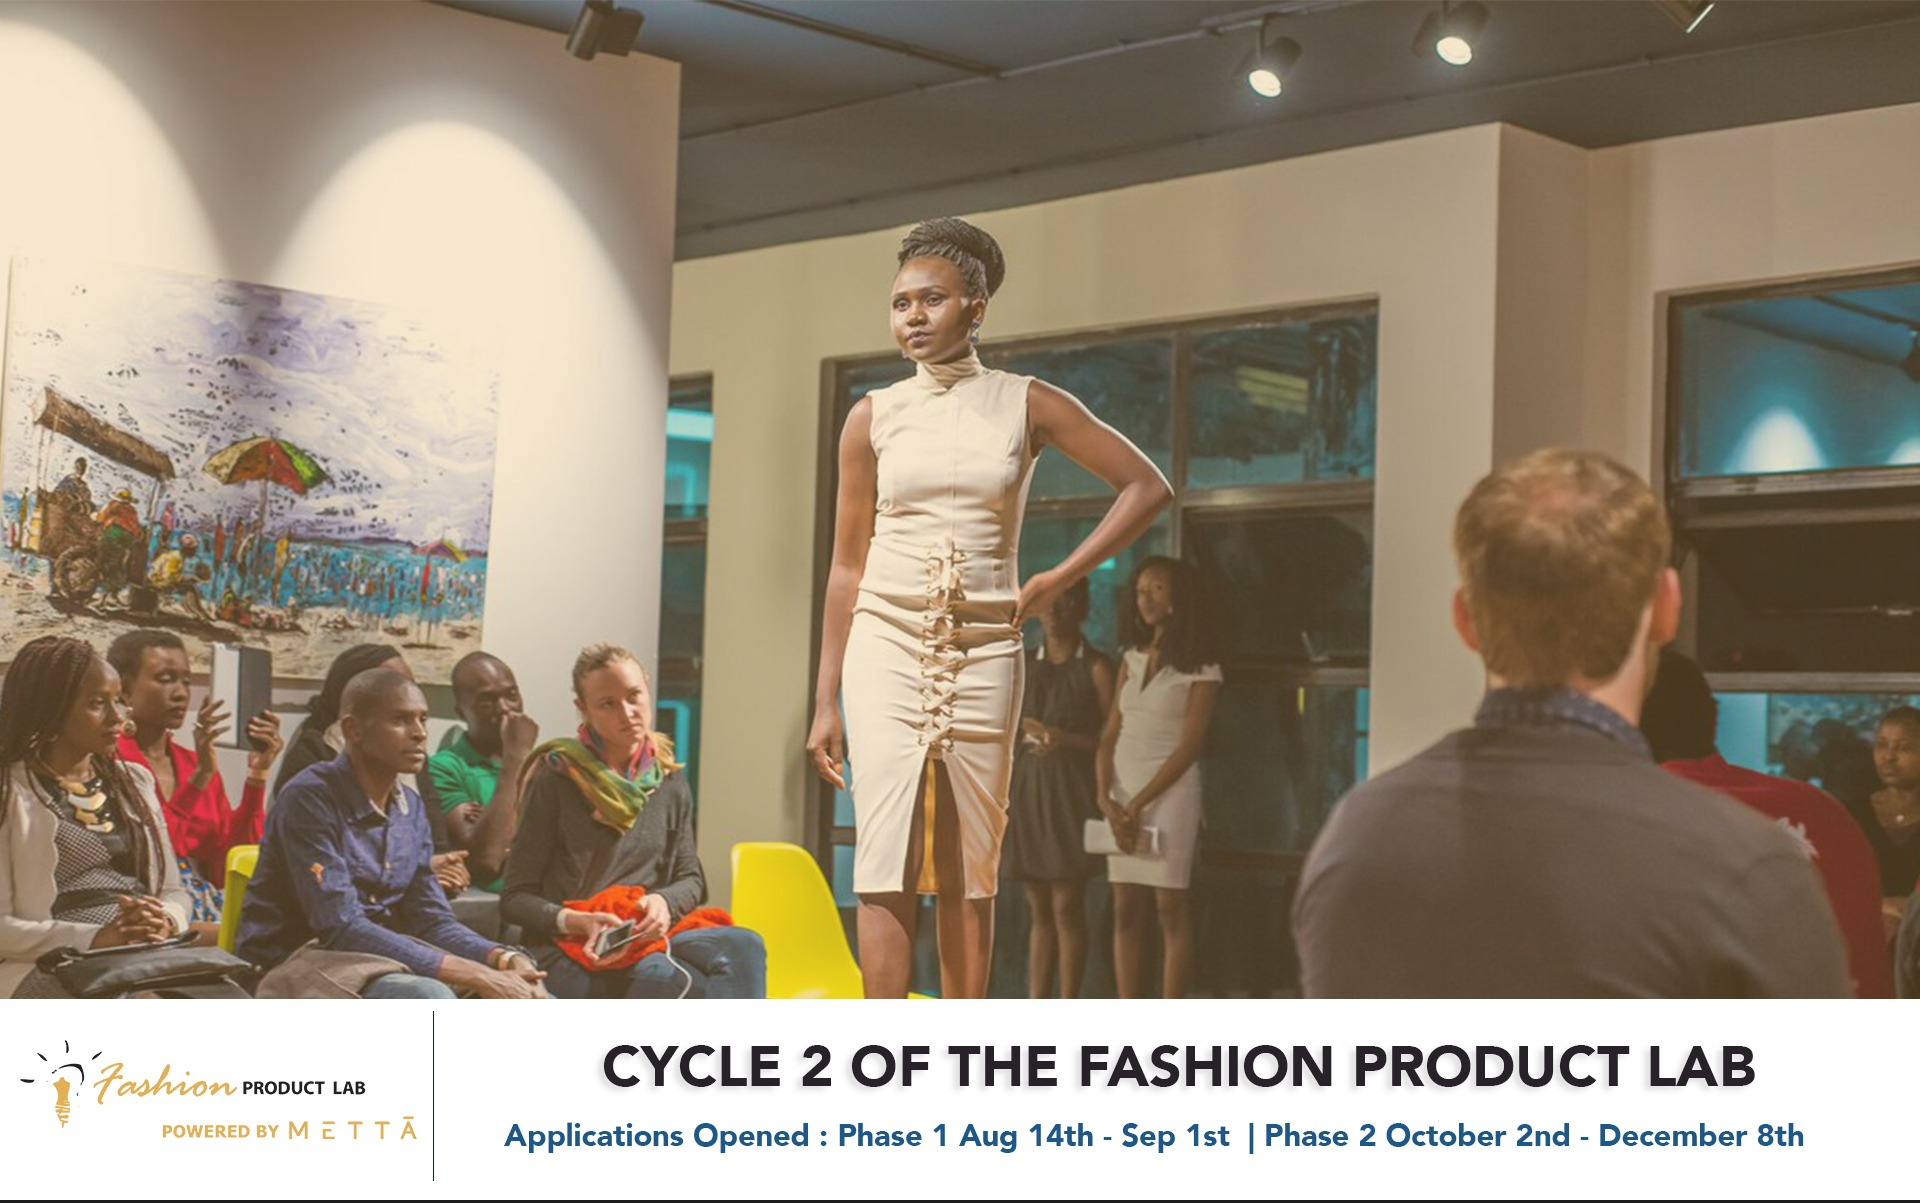 CYCLE 2 OF THE FASHION PRODUCT LAB WILL BE HOSTED BY METTĀ - Techgistafrica